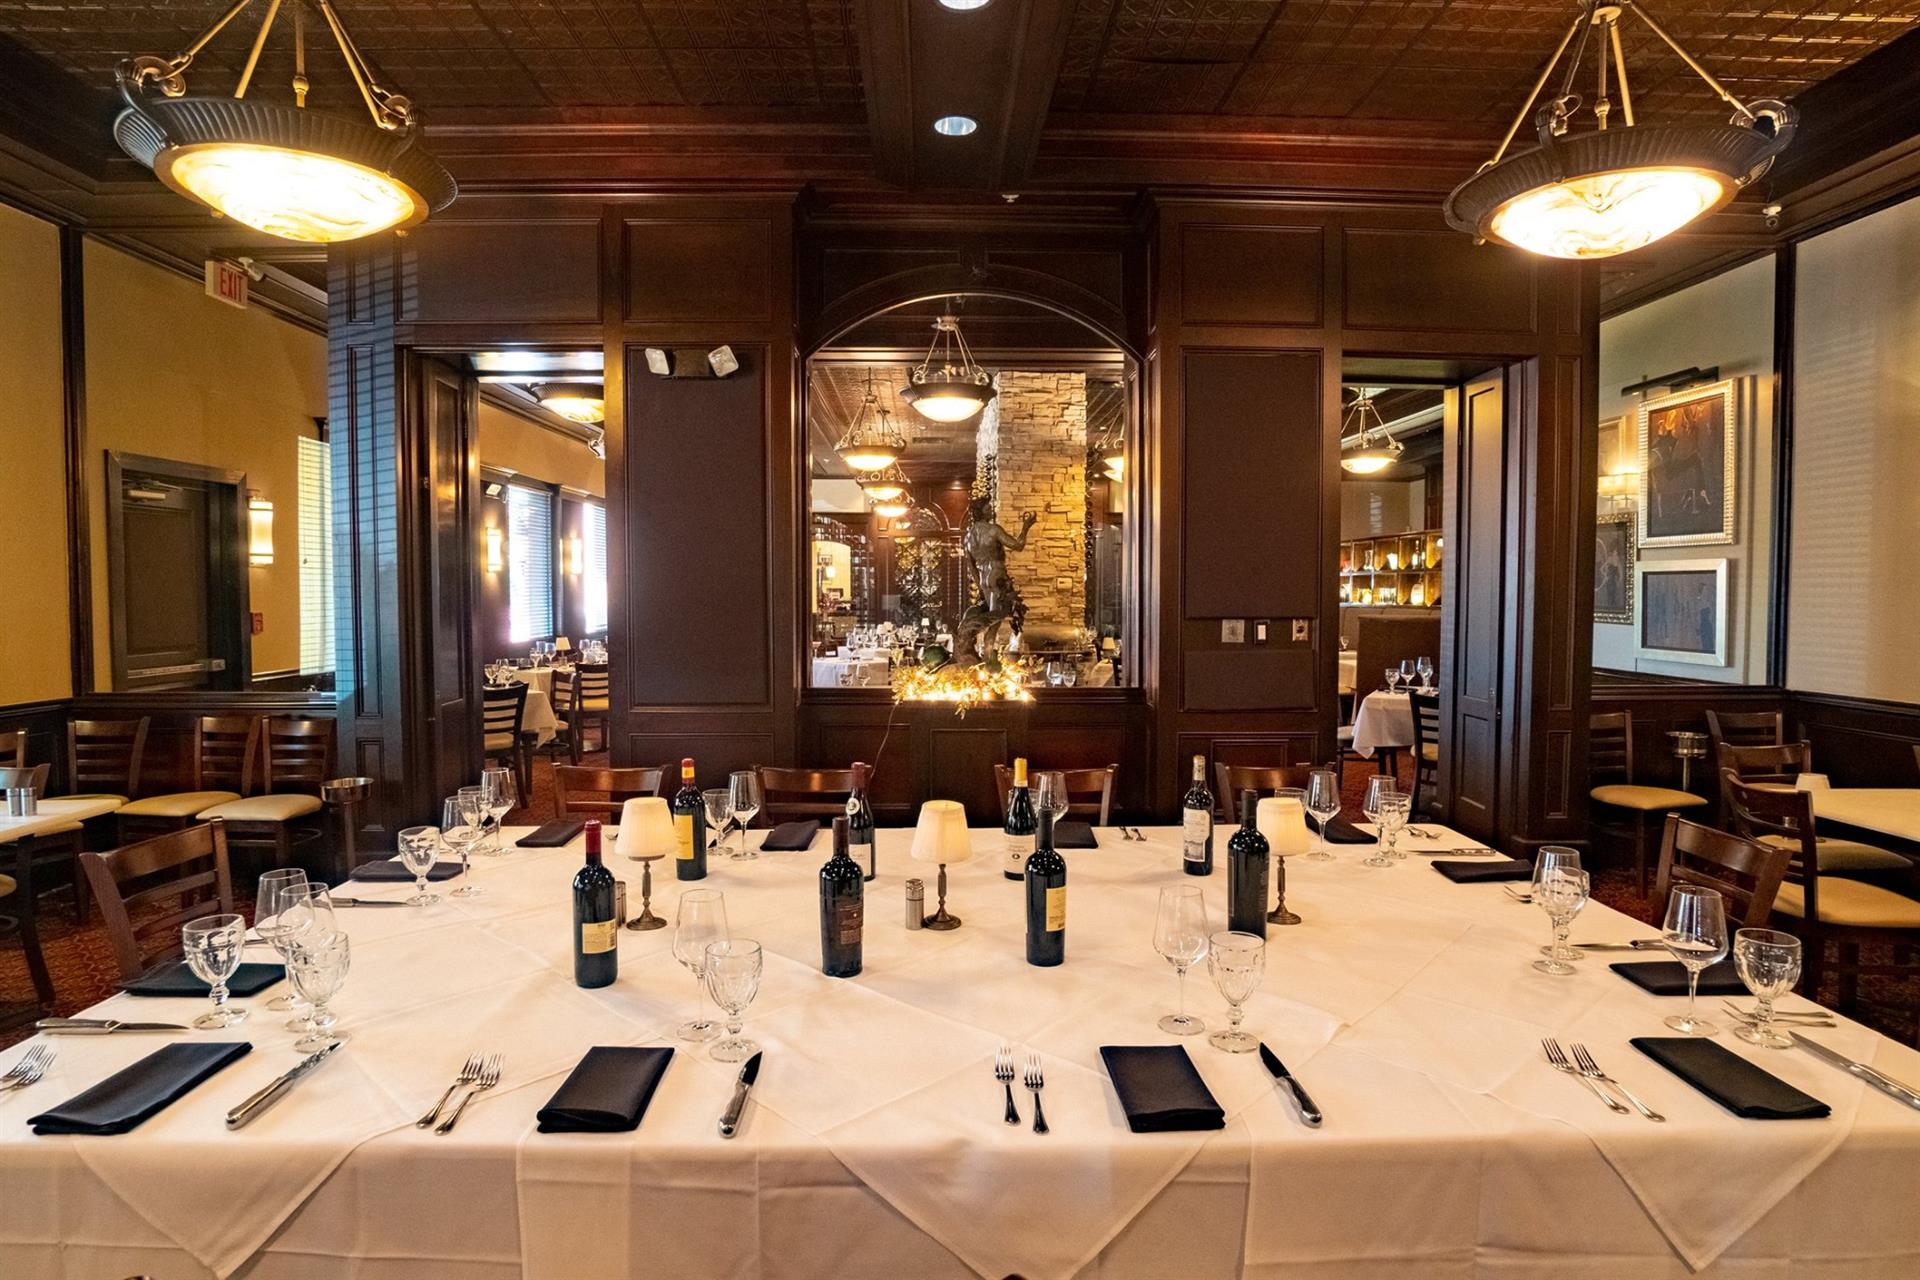 inside the restaurant, in the wine room, photo of a set table with wine bottles and place settings